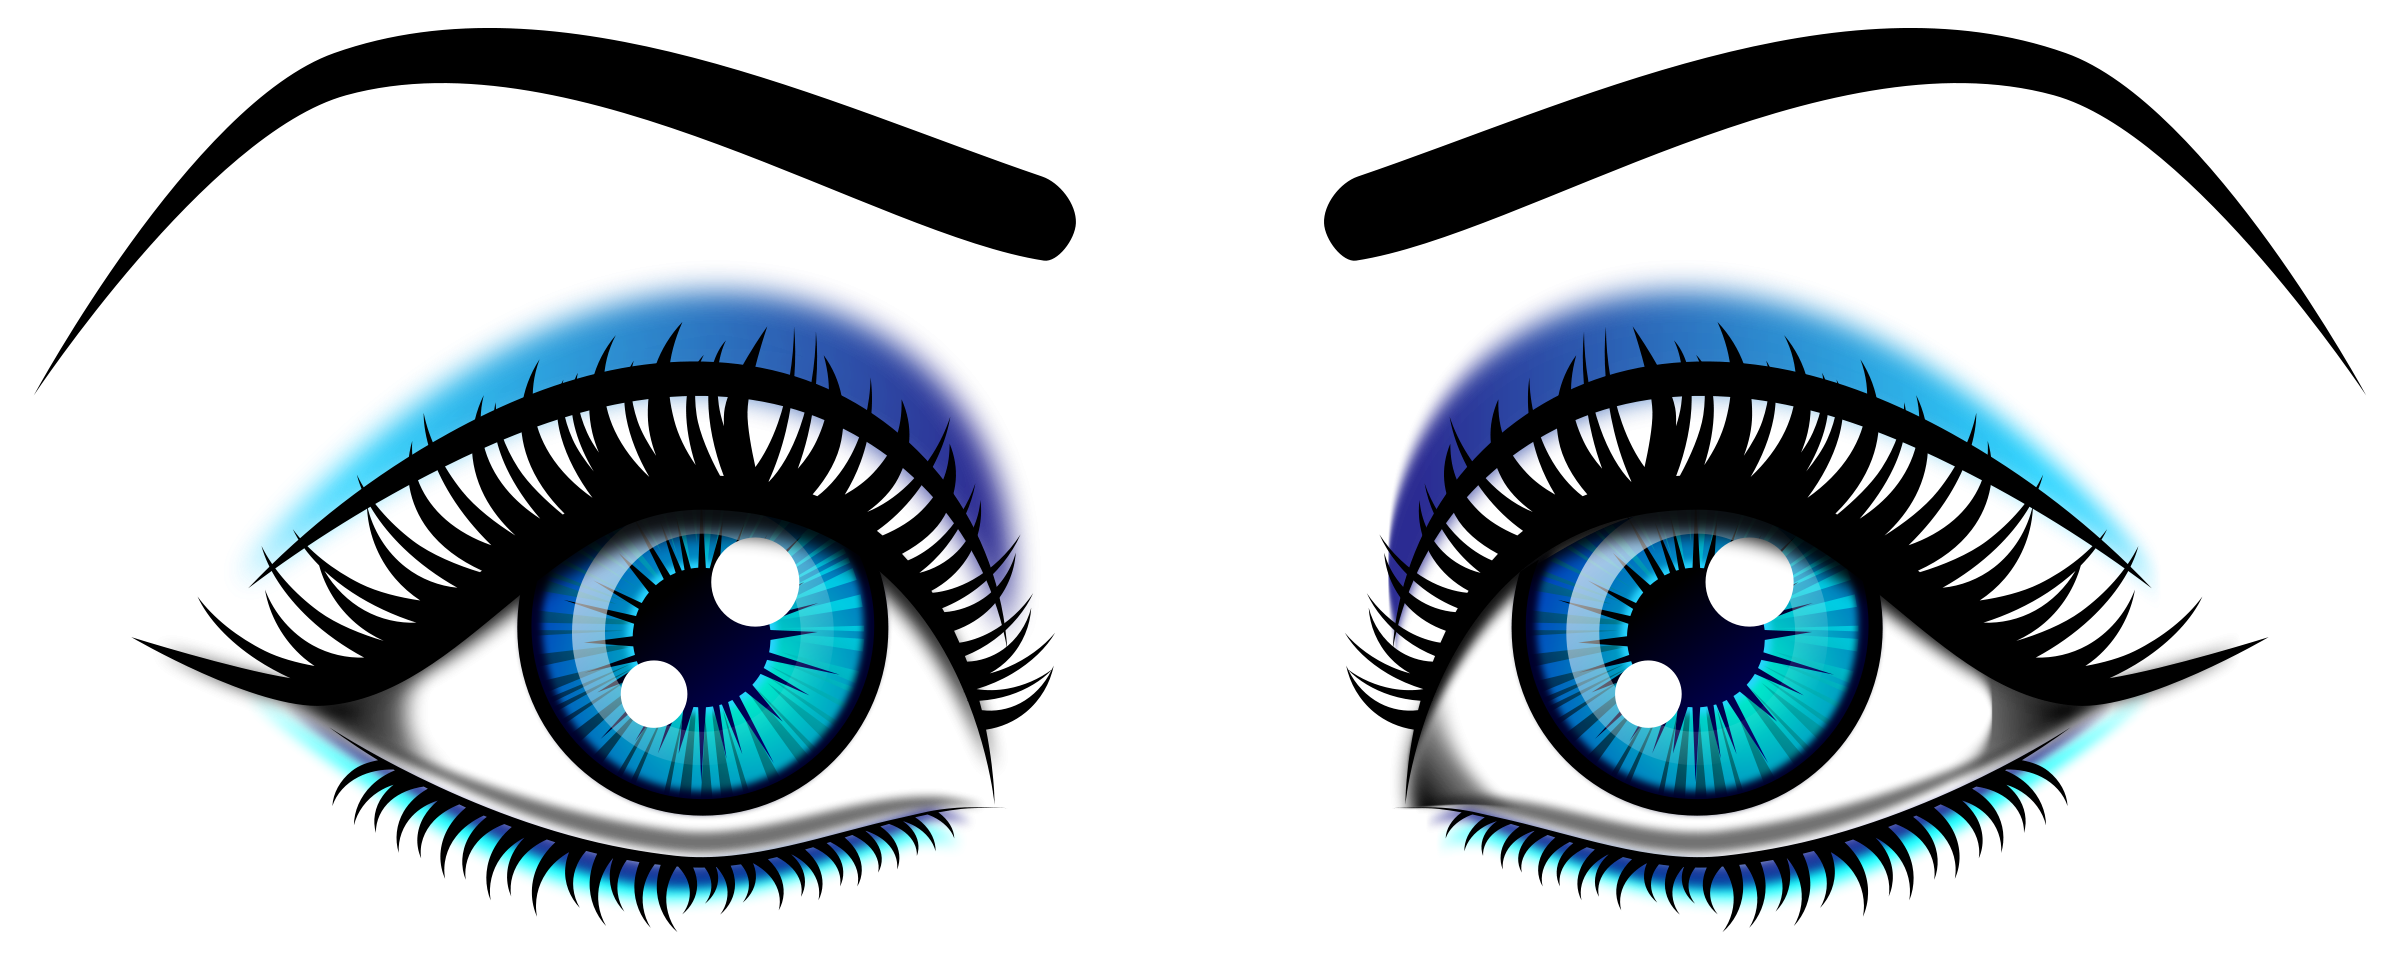 2400x960 Eyes Eye Clip Art For Kids Free Clipart Images 2